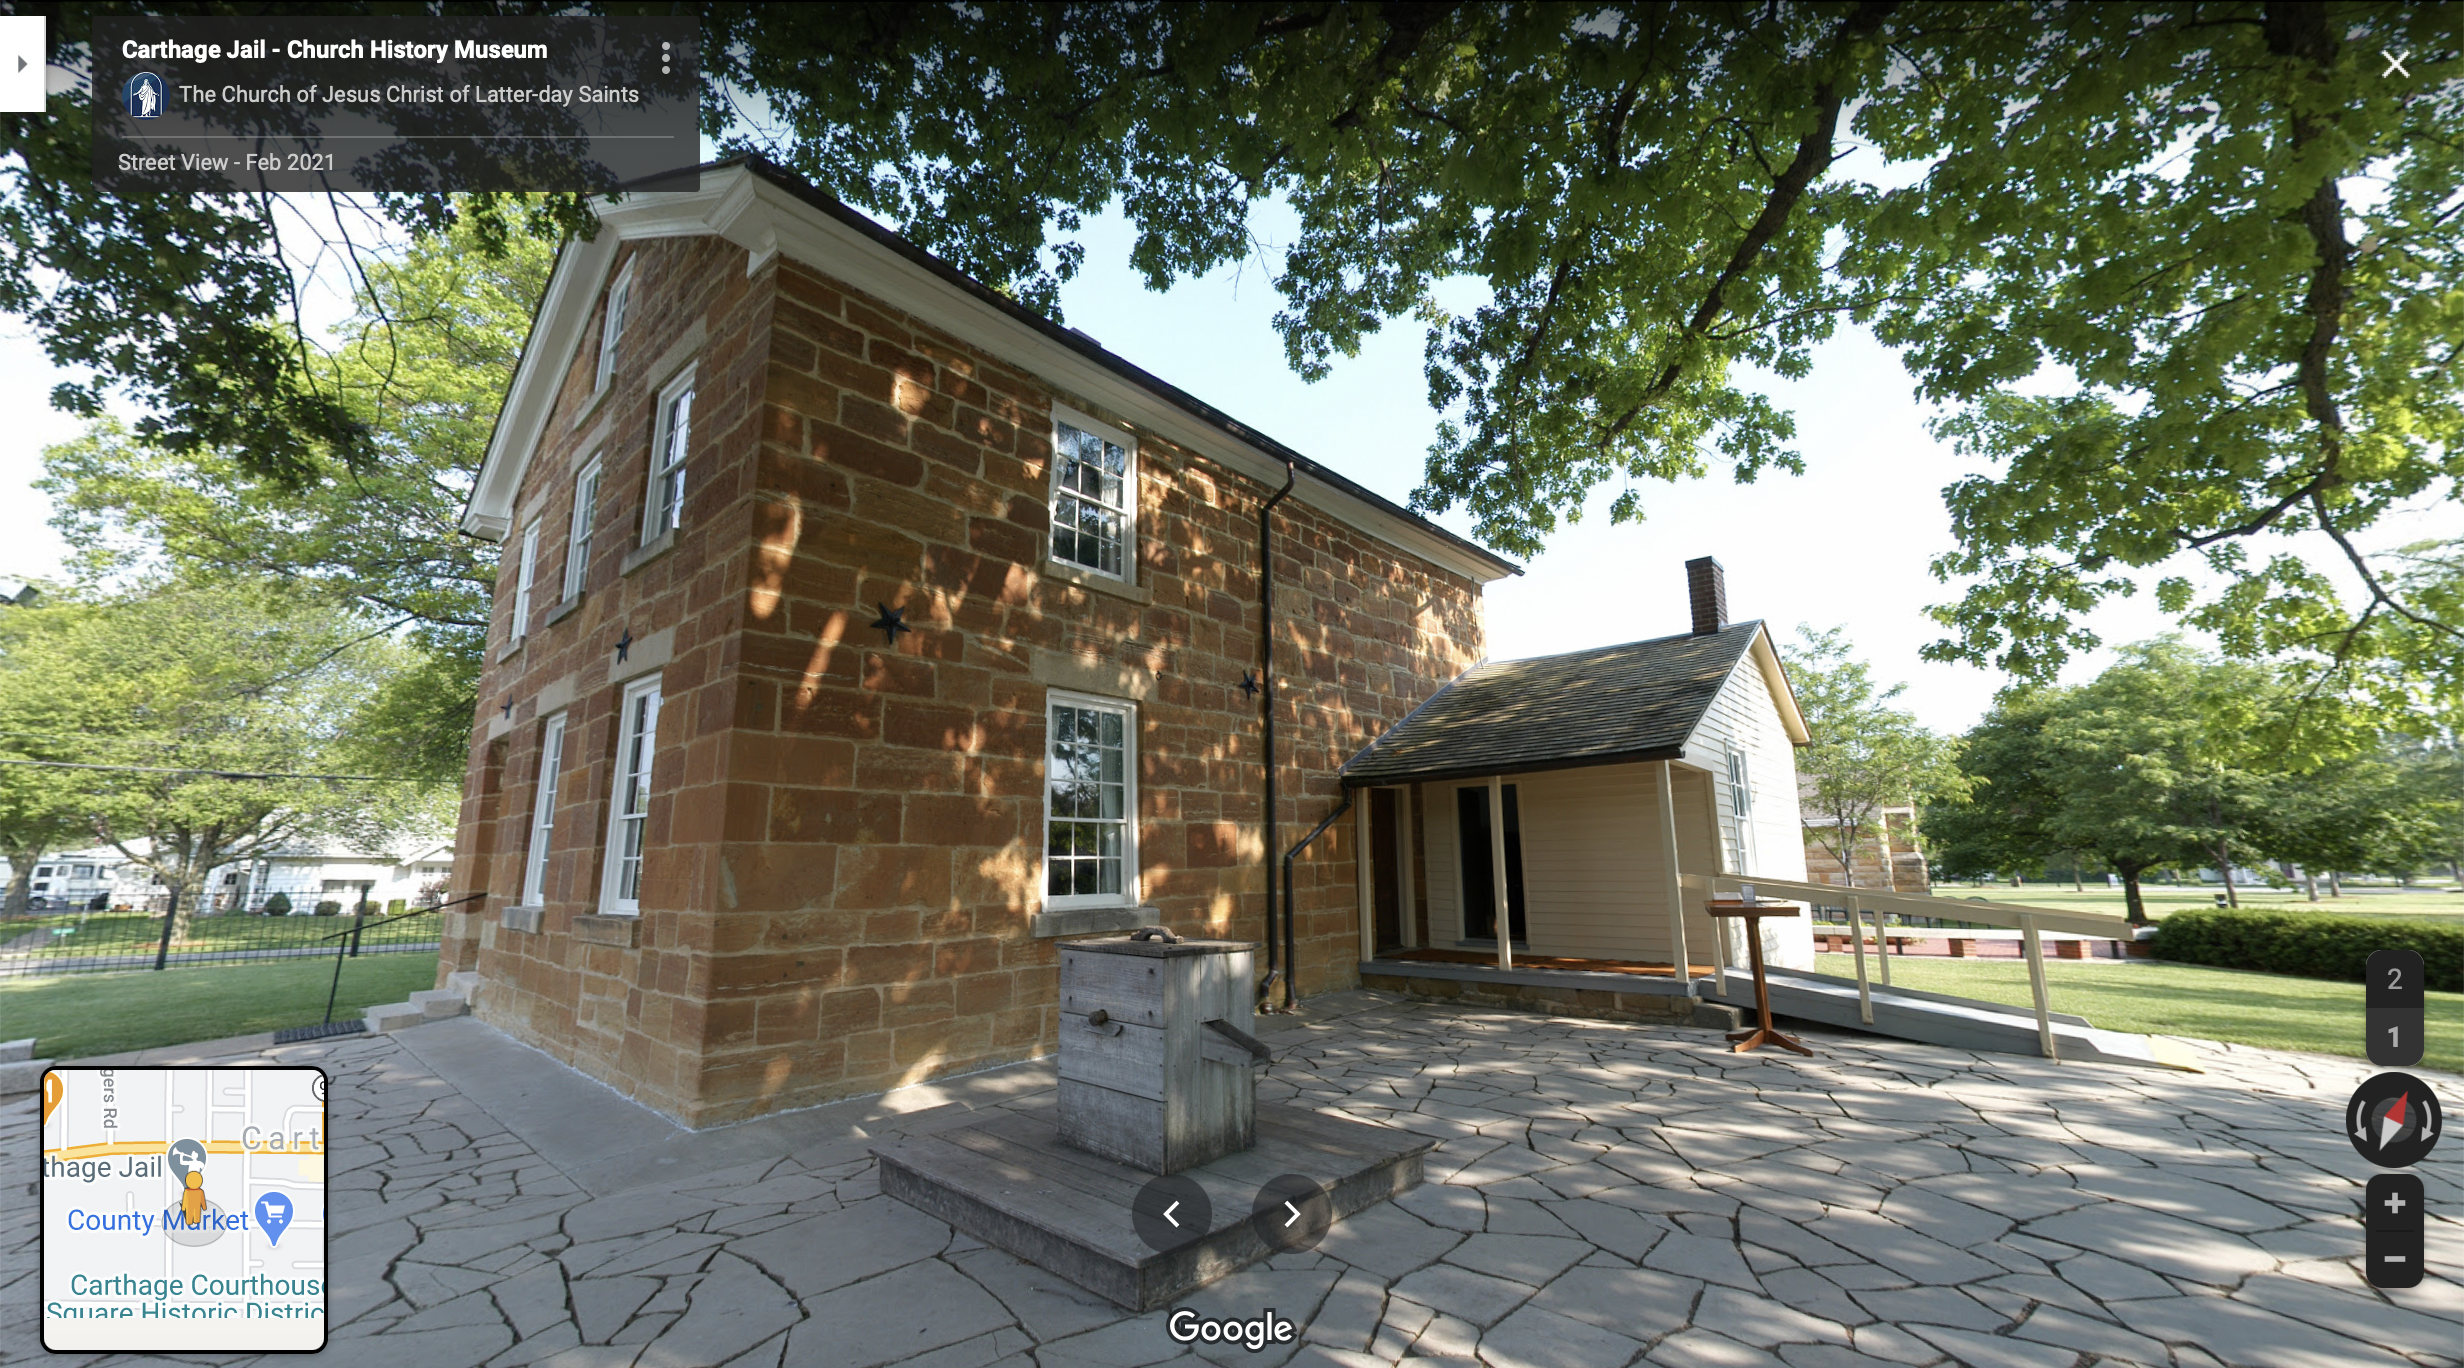 Screenshot of the Google Maps 360 view of the Carthage Jail